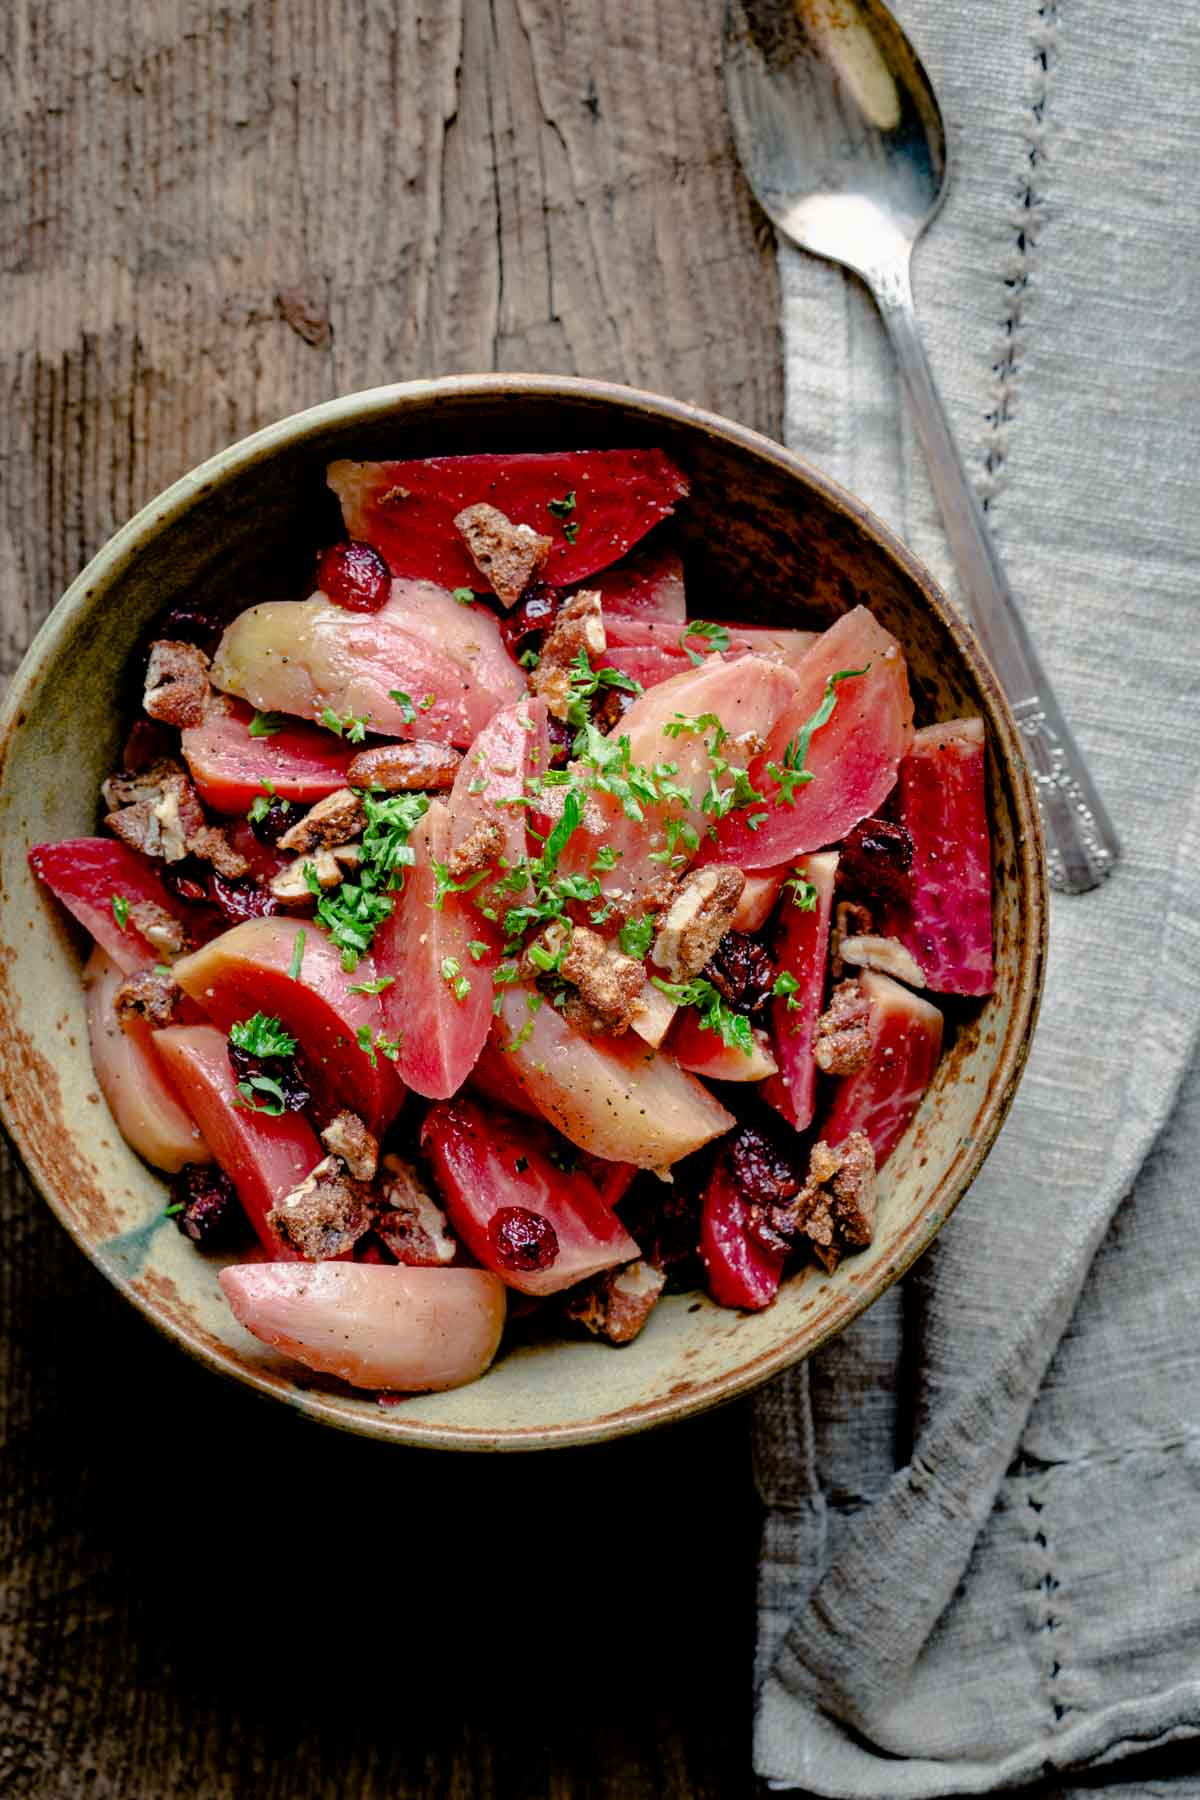 beets with spiced nuts in a ceramic bowl on a wooden tabletop